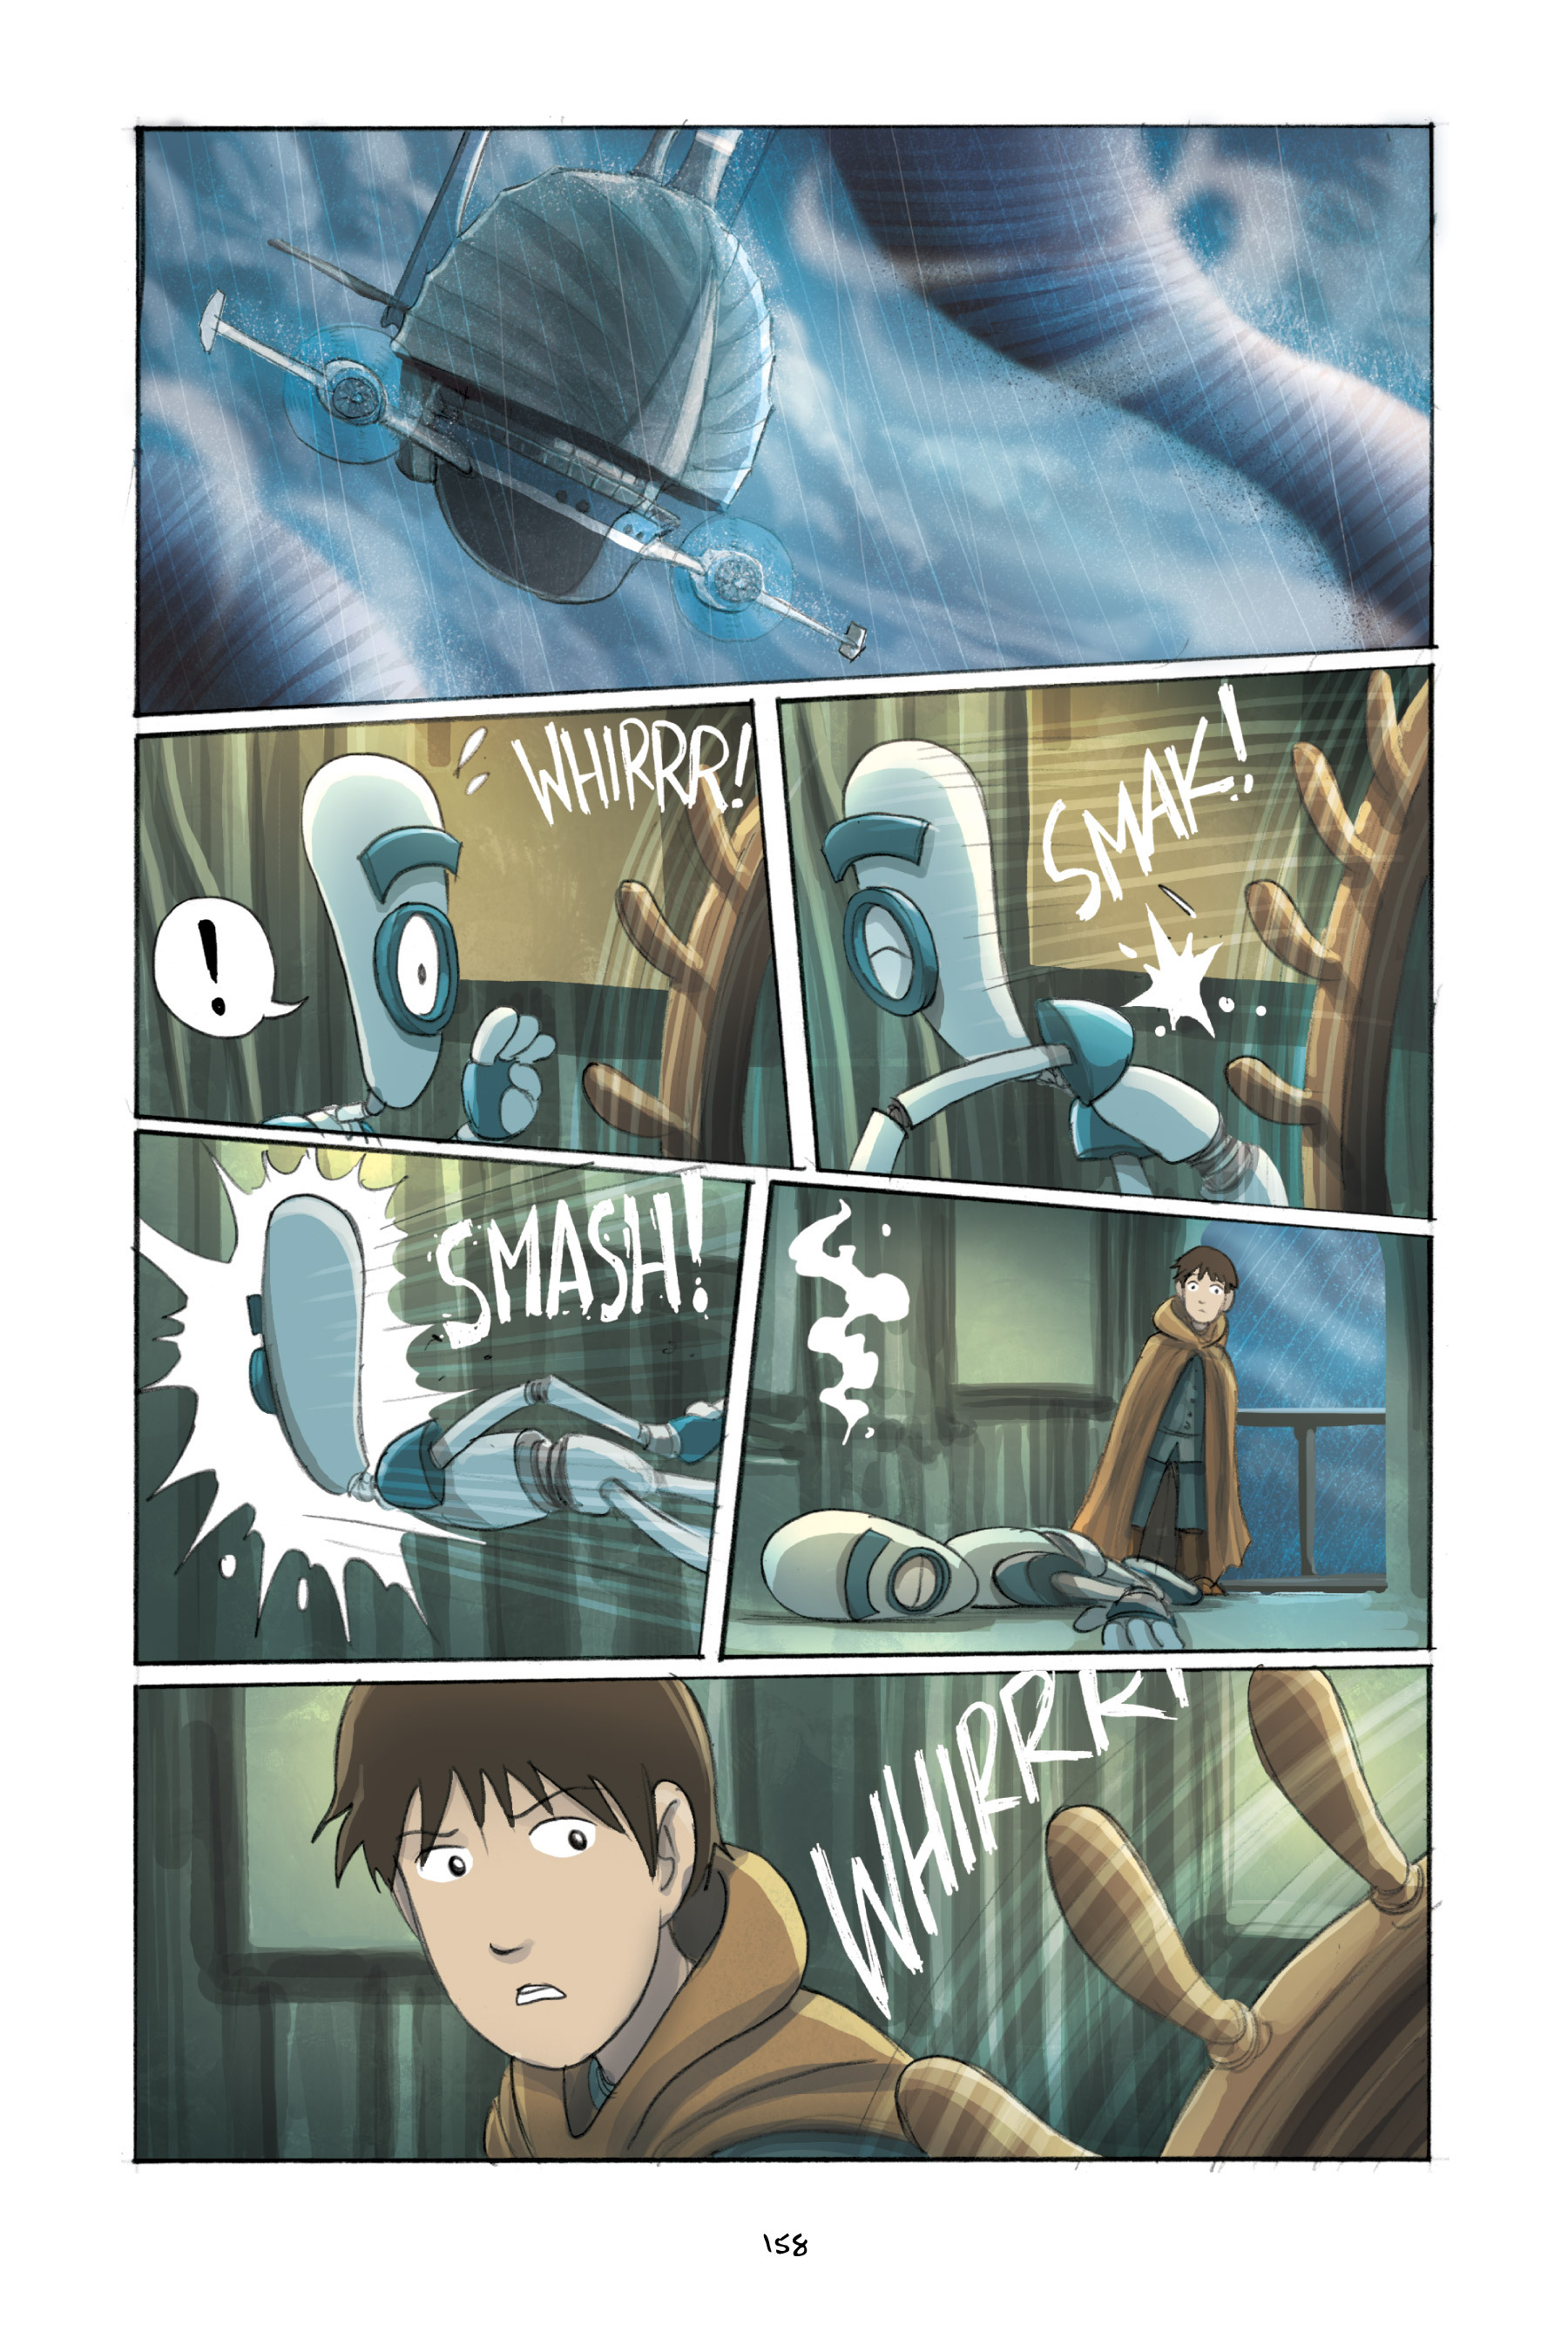 Read online Amulet comic -  Issue #3 - 154